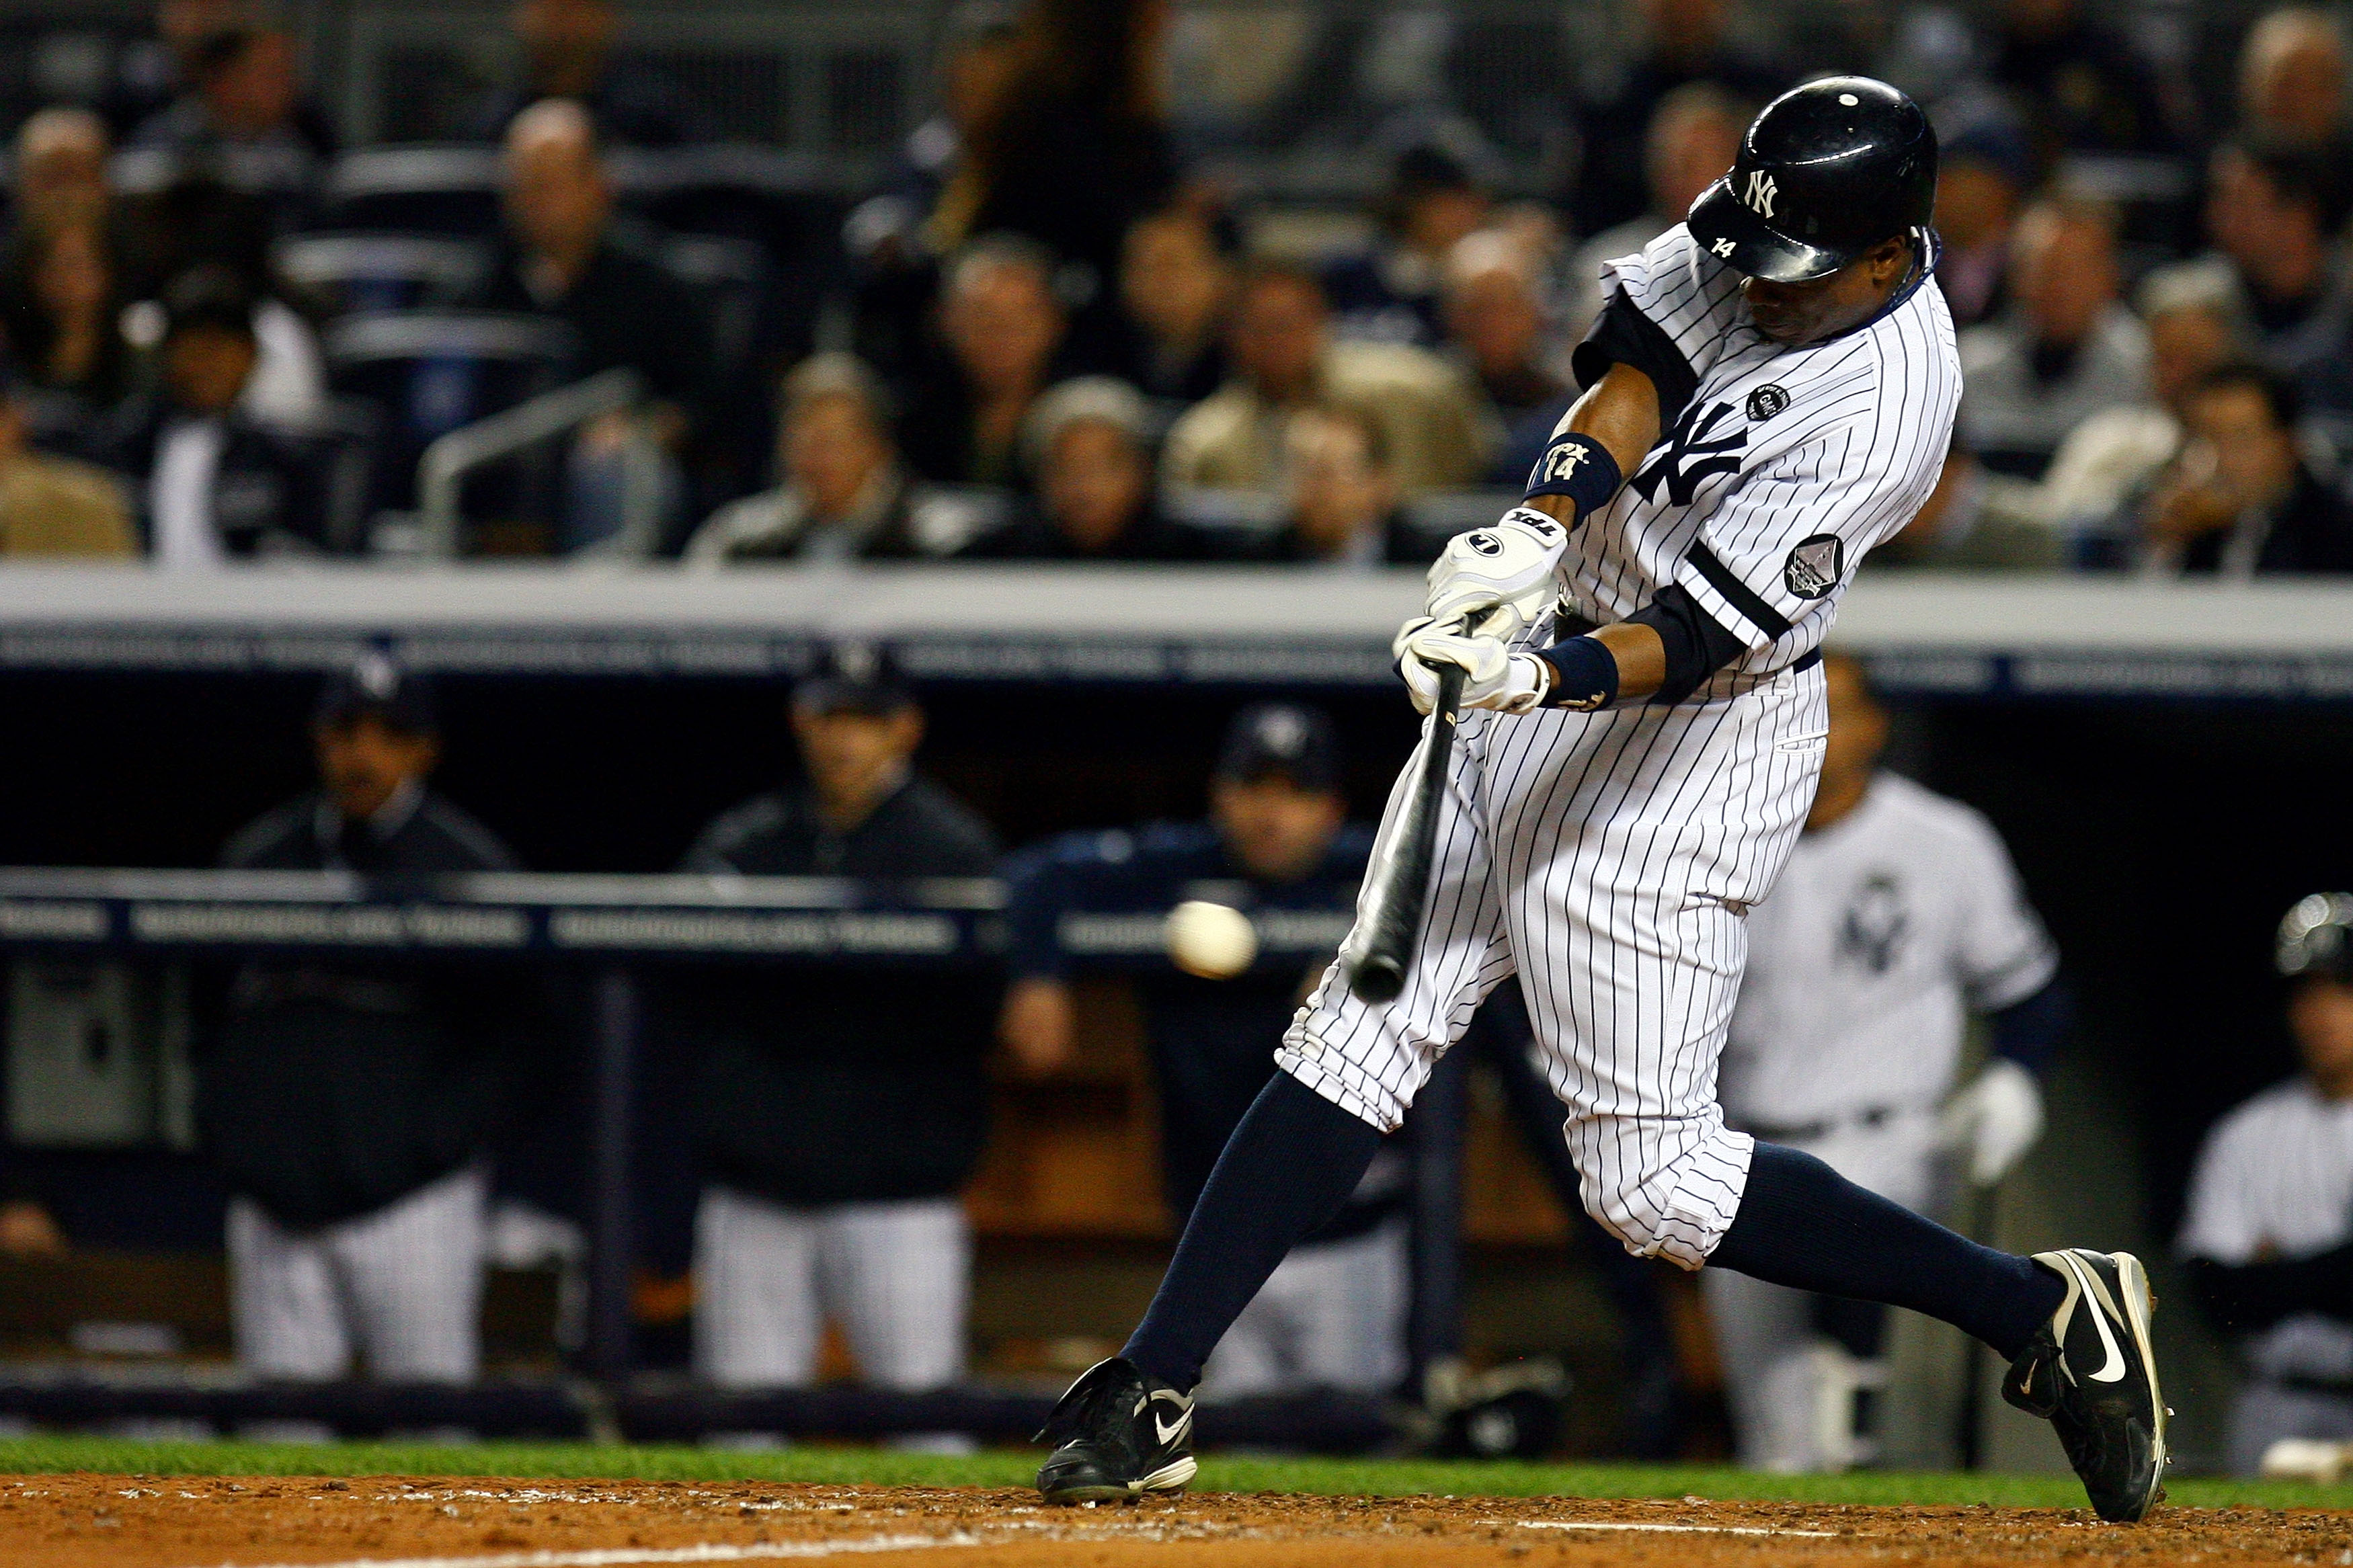 NEW YORK - OCTOBER 19:  Curtis Granderson #14 of the New York Yankees hits an RBI single in the third inning against the Texas Rangers in Game Four of the ALCS during the 2010 MLB Playoffs at Yankee Stadium on October 19, 2010 in the Bronx borough of New